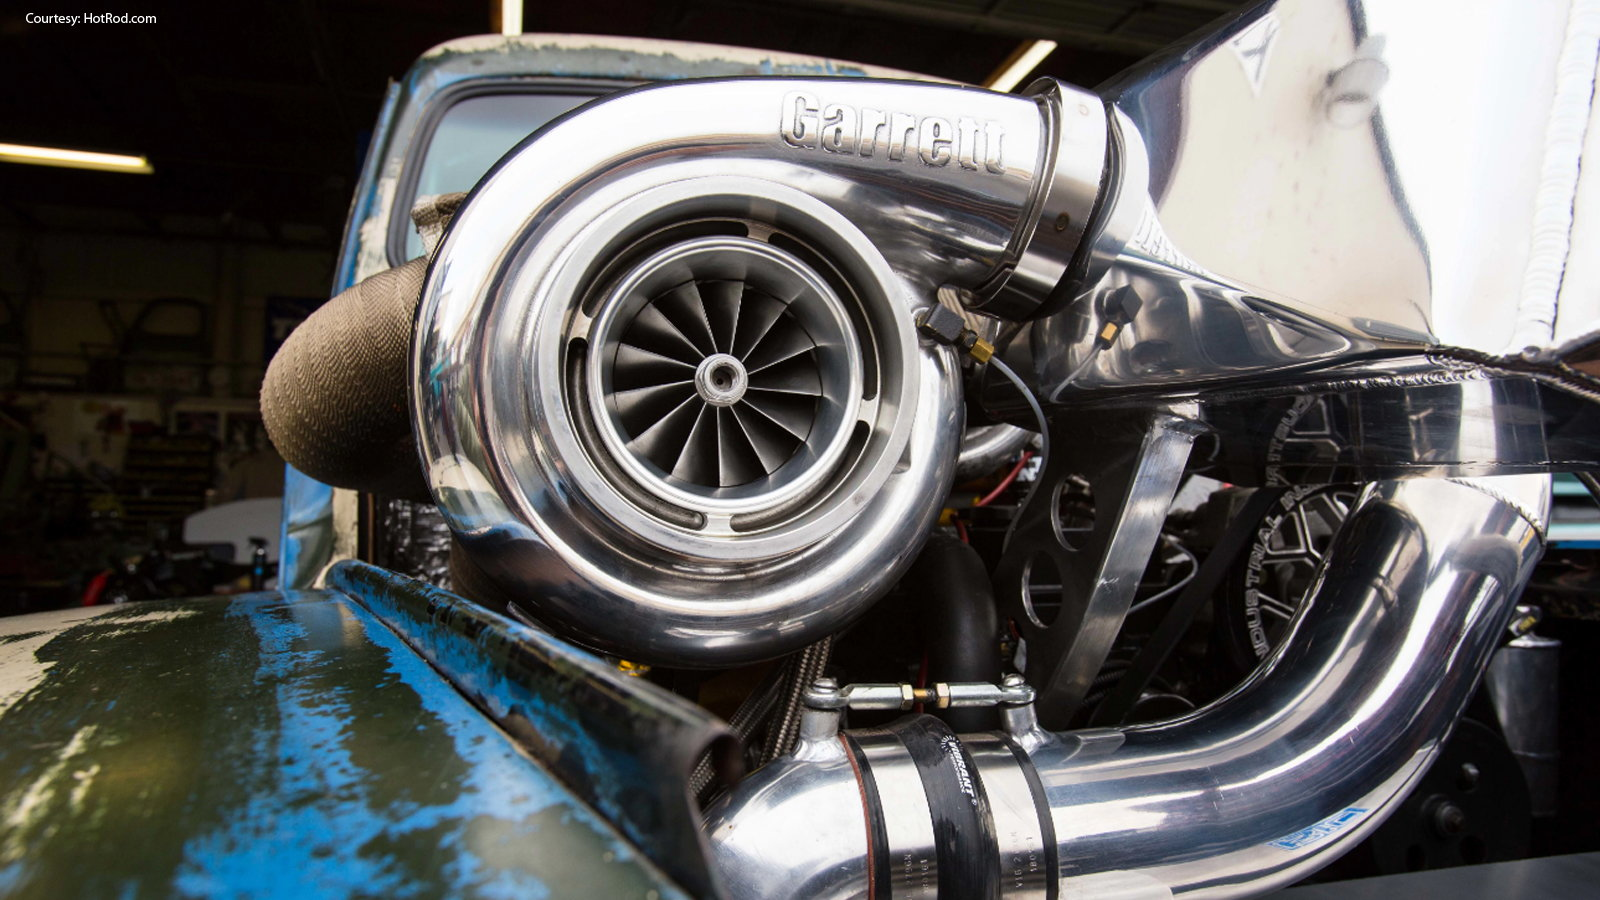 Looks Can be Deceiving with This 1,200HP F1